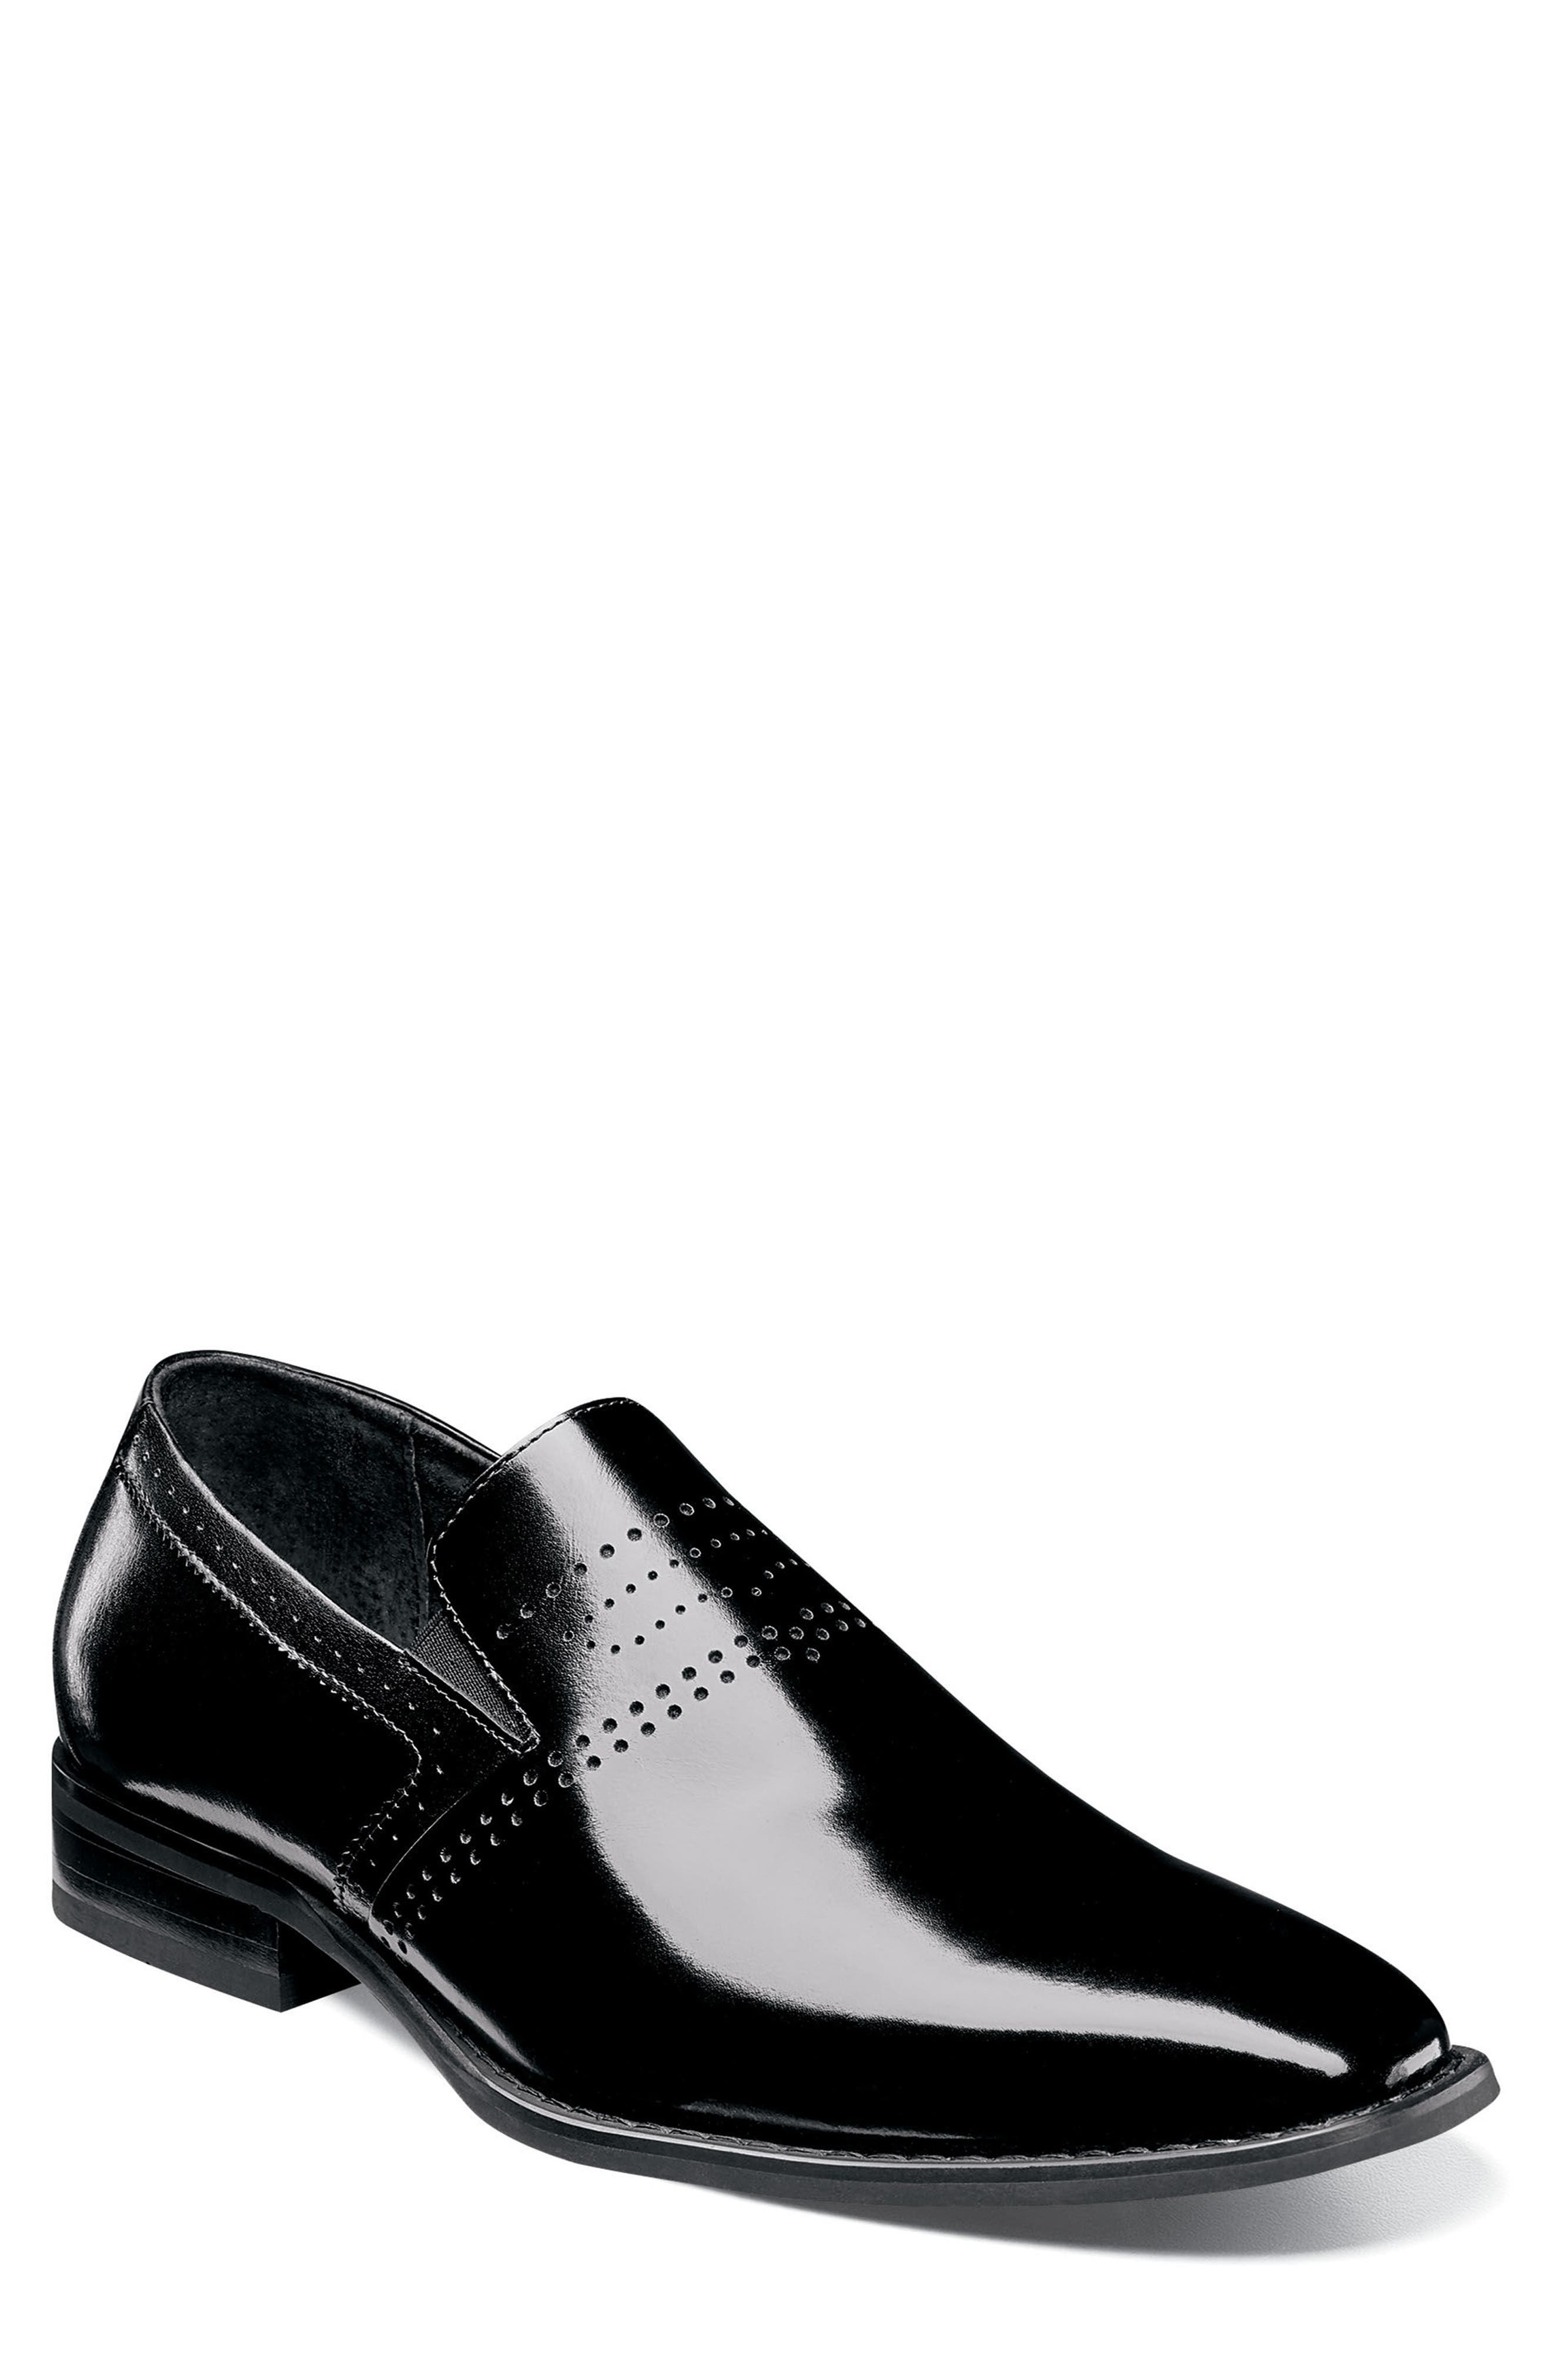 Alternate Image 1 Selected - Stacy Adams Saunders Perforated Venetian Loafer (Men)